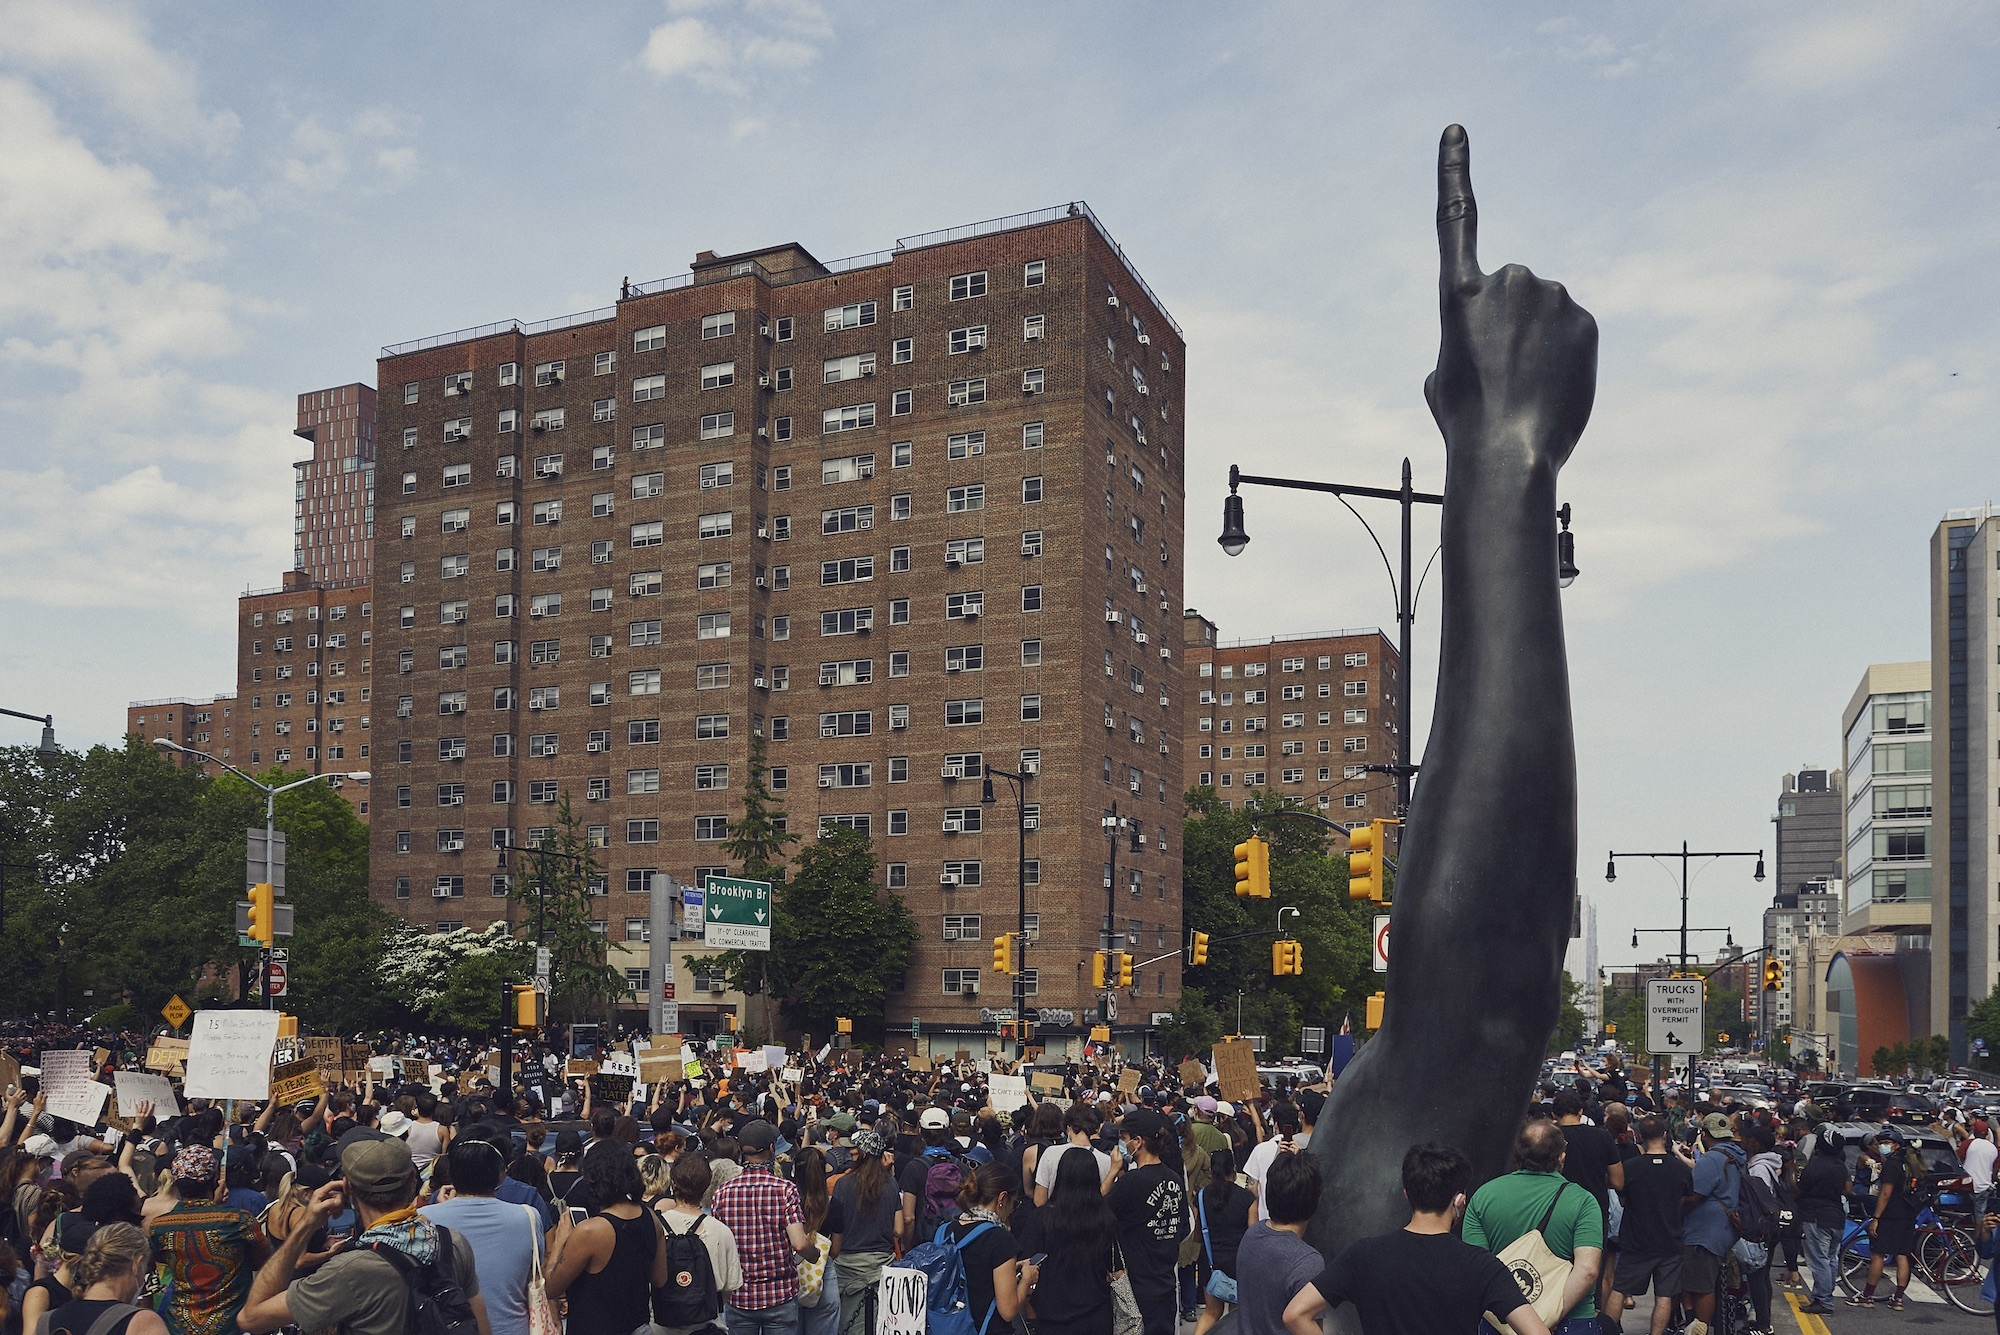 """Attendees of the George Floyd Memorial march near Hank Willis Thomas's """"Unity"""" sculpture, June 2020. (by Jon Vachon, courtesy Center for Brooklyn History)"""